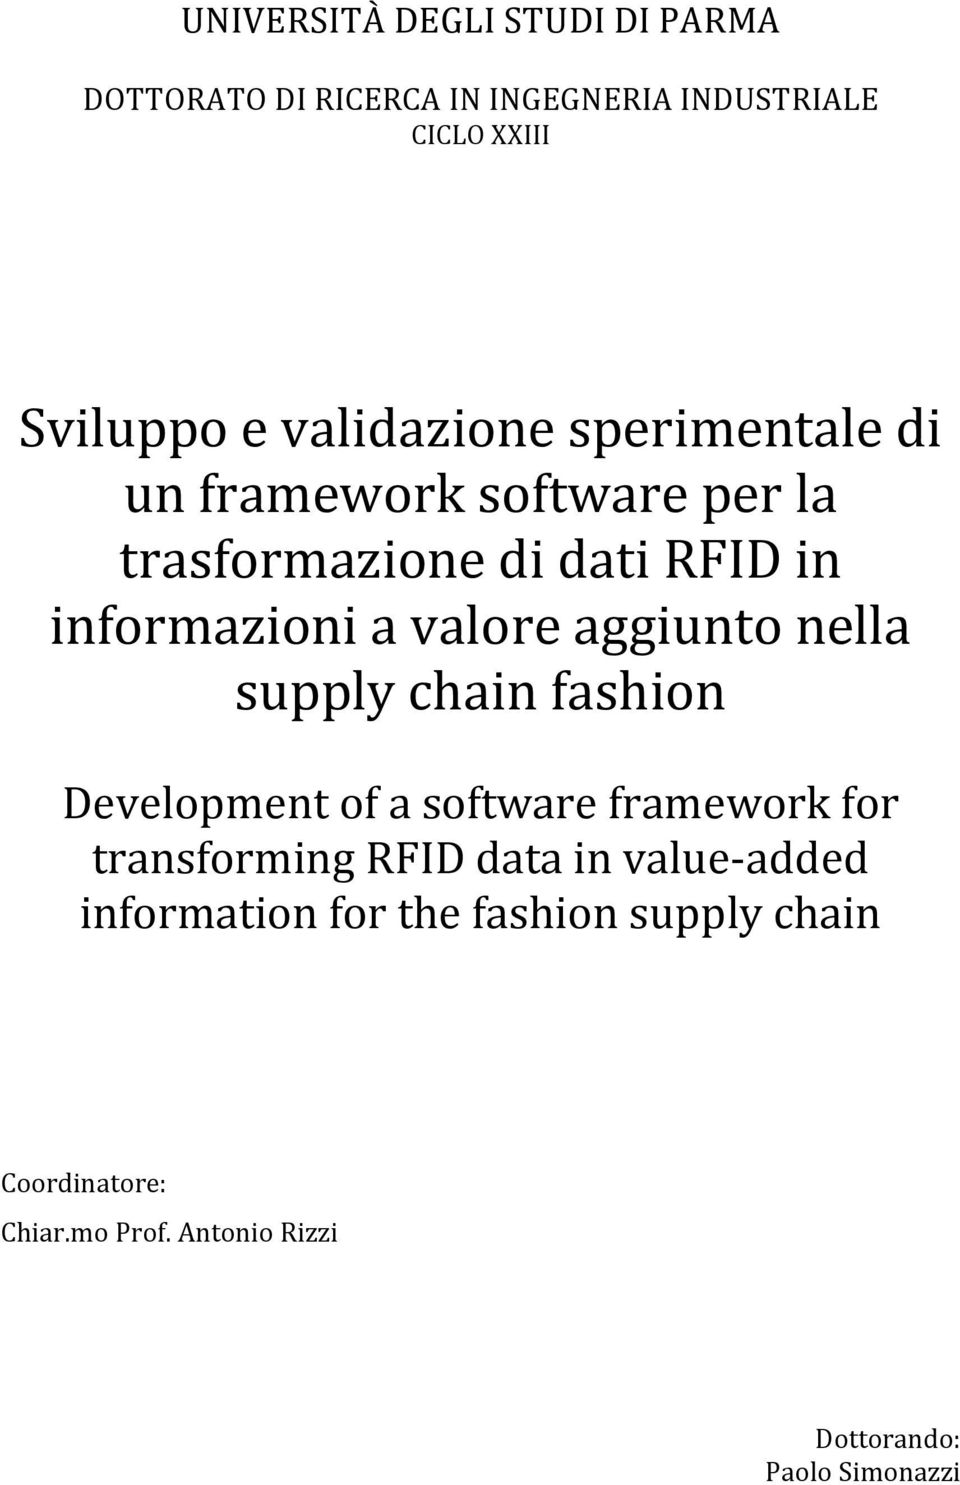 aggiunto nella supply chain fashion Development of a software framework for transforming RFID data in